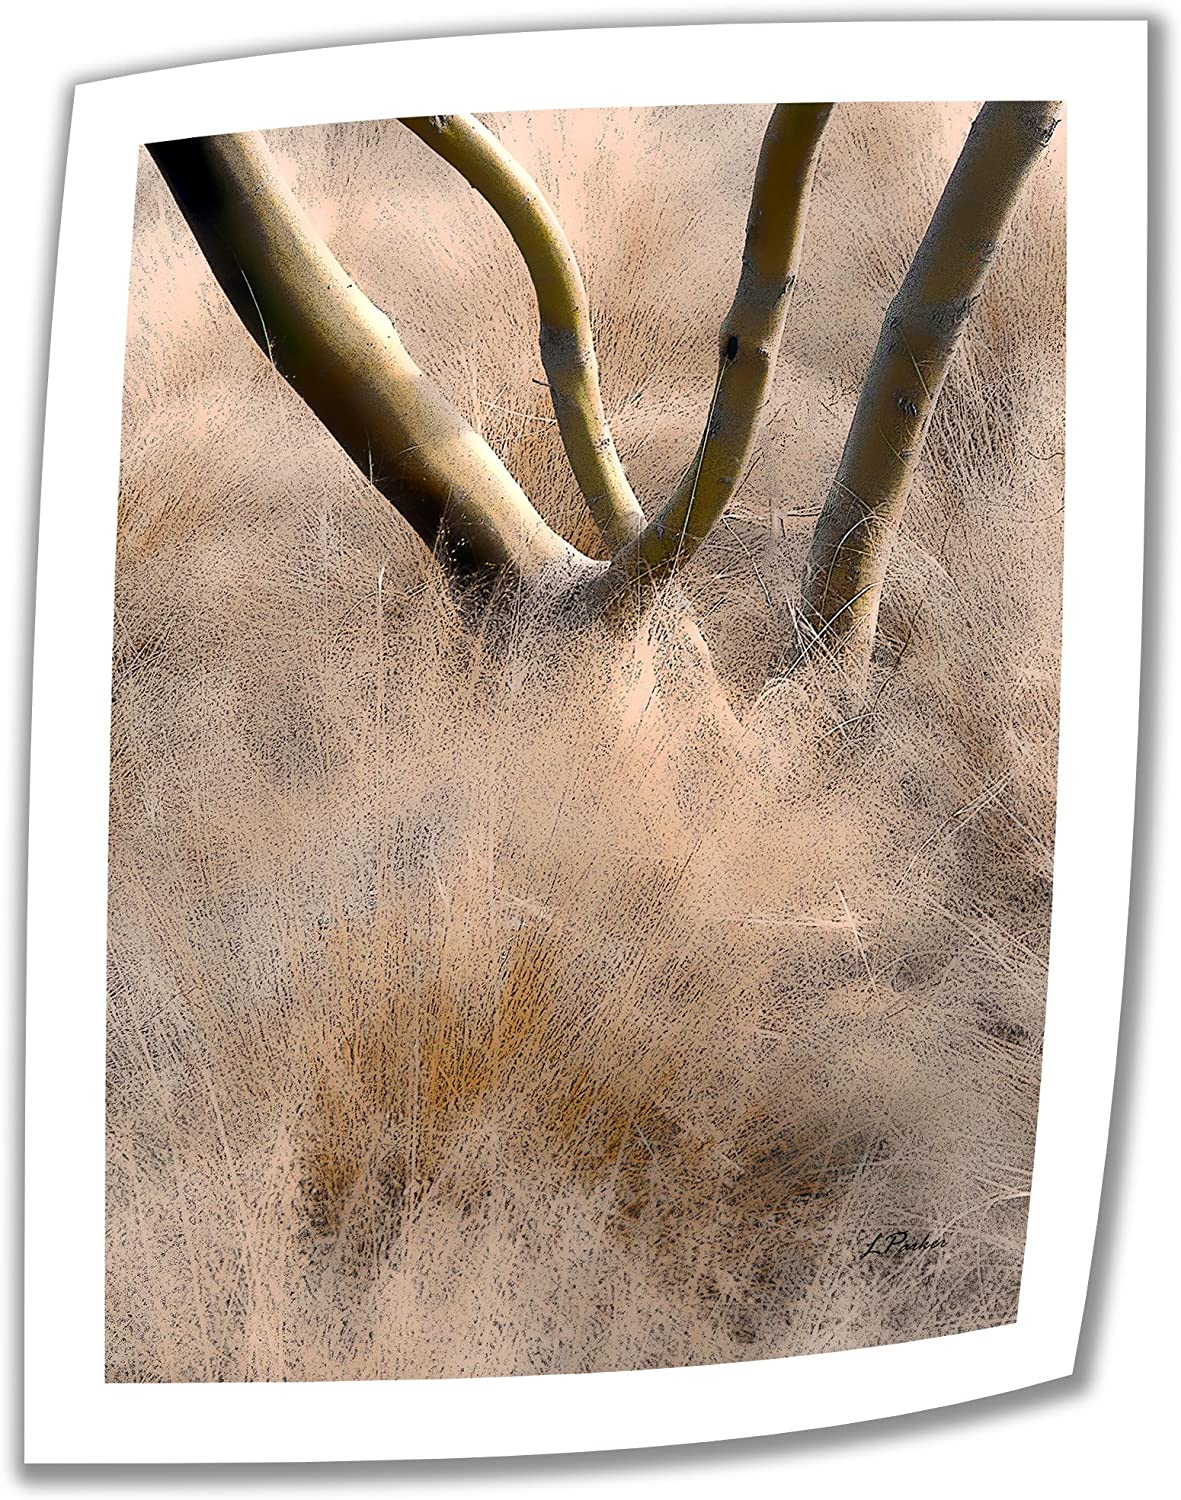 Art Wall Desert Grasses 32 by 24-Inch Unwrapped Canvas Art by Linda Parker with 2-Inch Accent Border